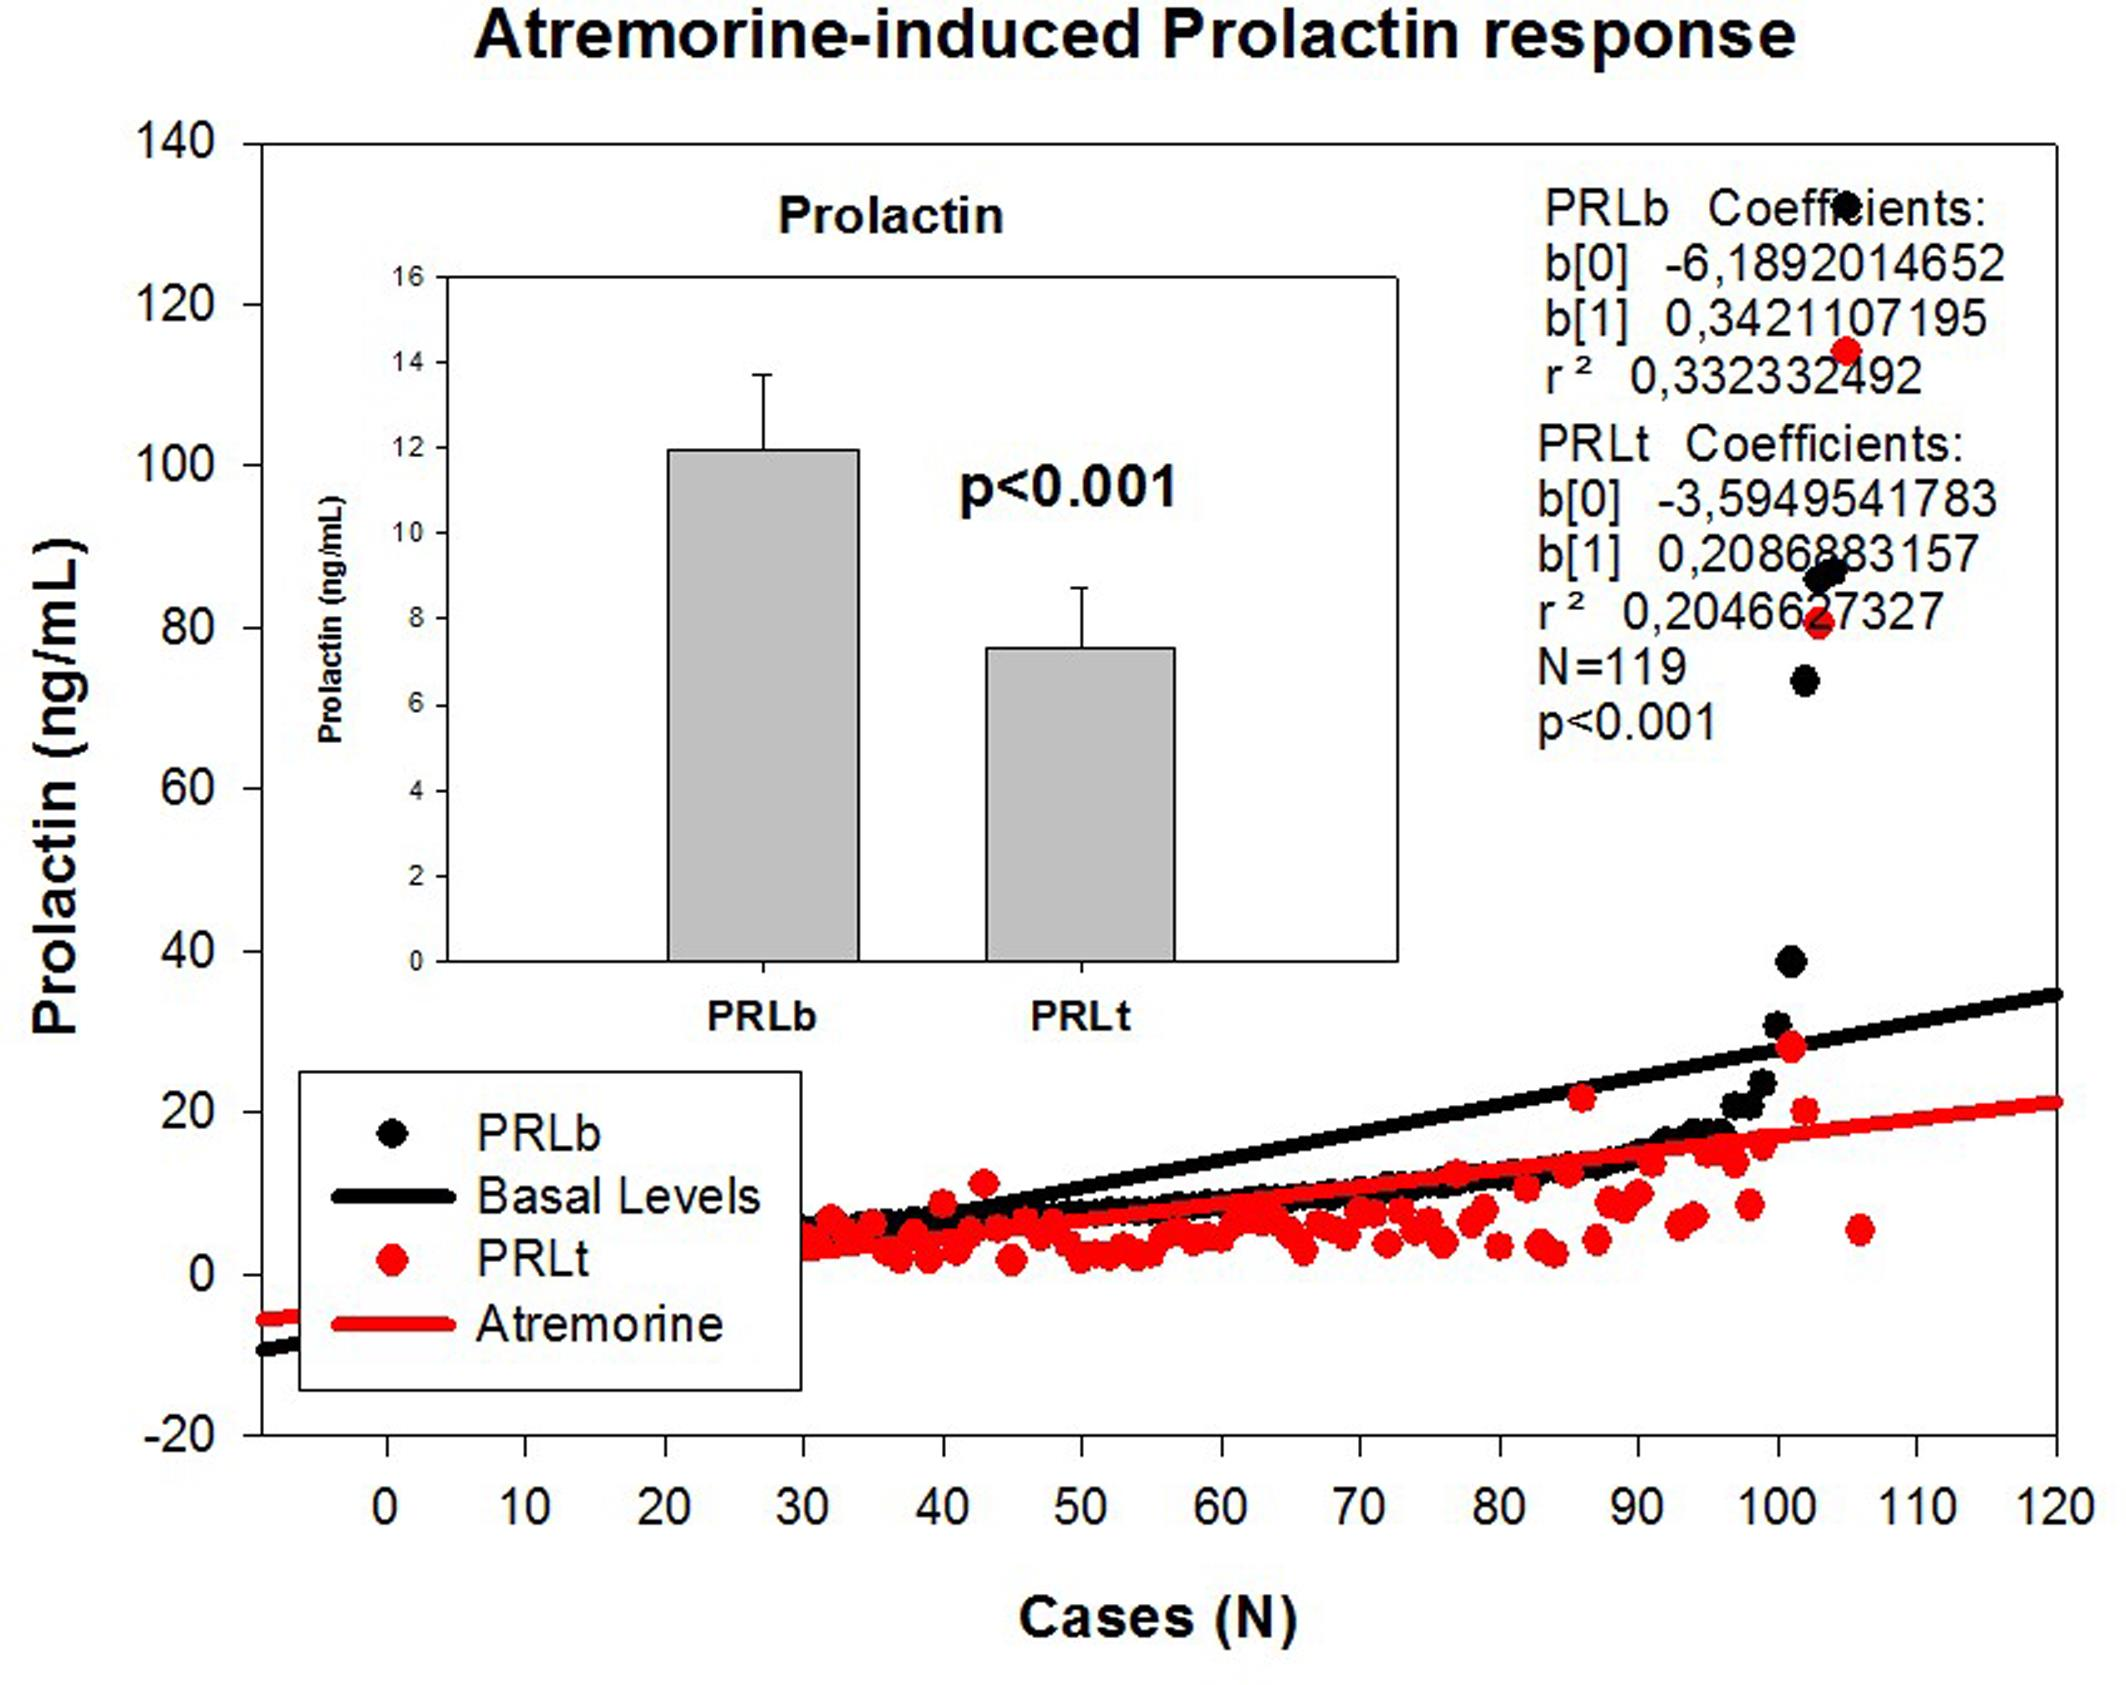 Atremorine-induced prolactin (PRL) response in patients with Parkinsonian disorders.